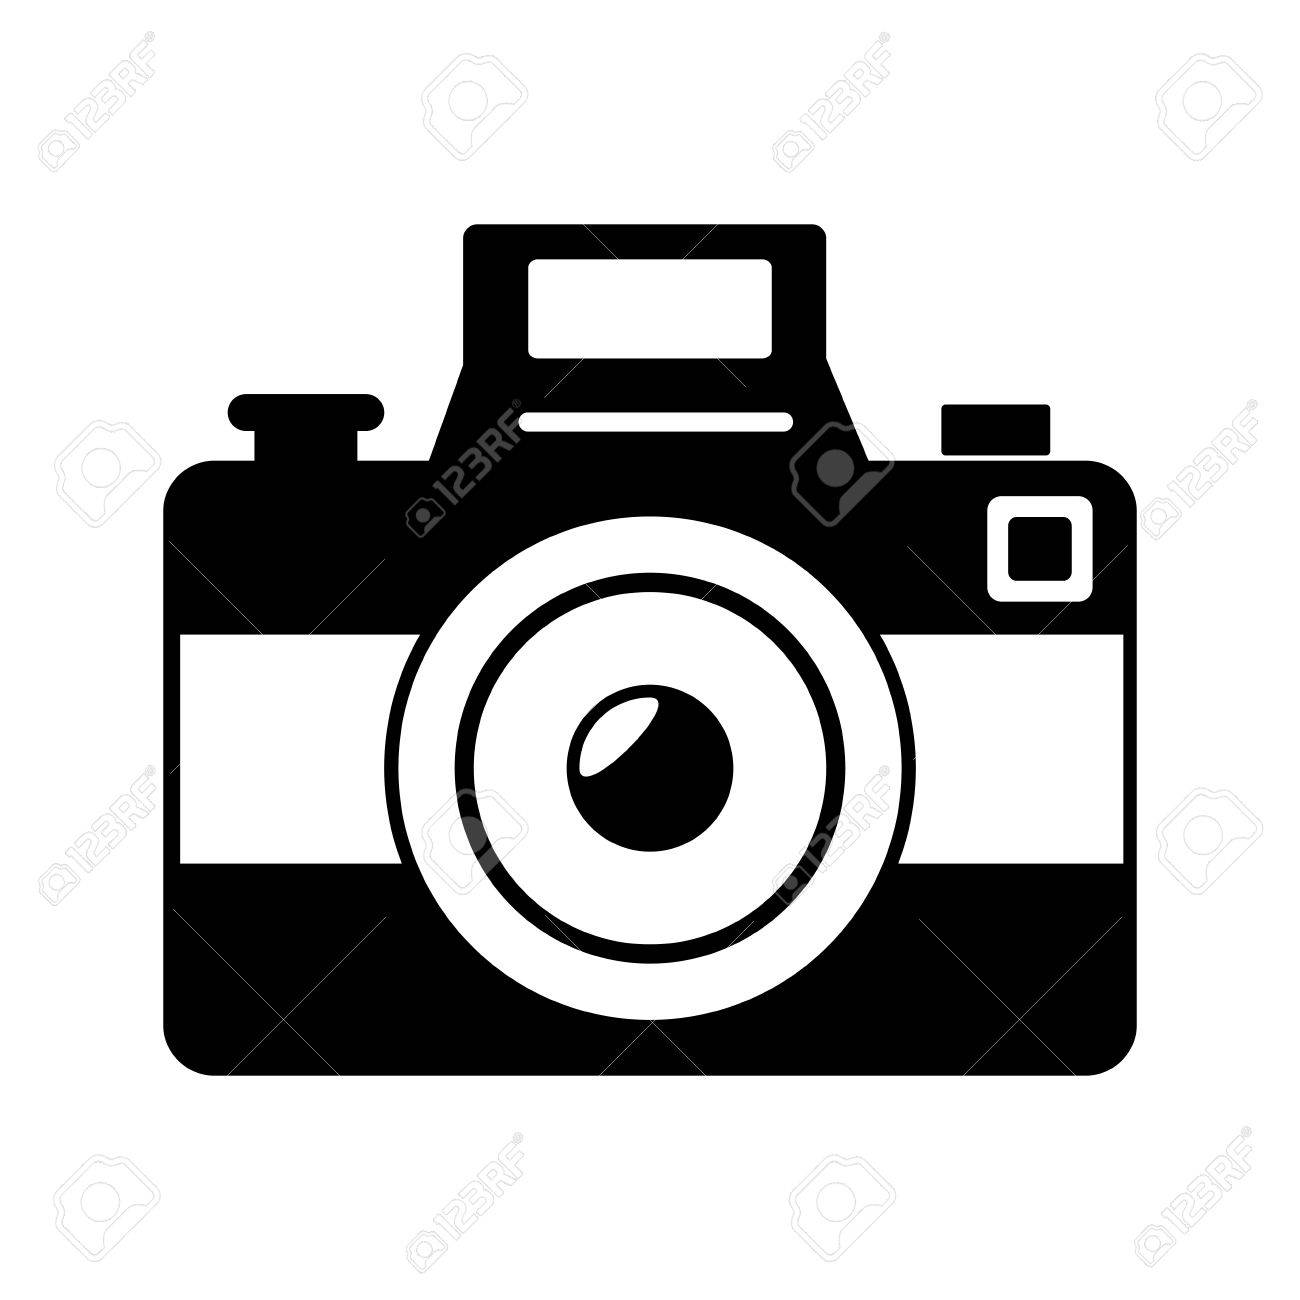 Vintage Photographic Camera Isolated Flat Icon Cartoon Royalty Free Cliparts Vectors And Stock Illustration Image 61124334